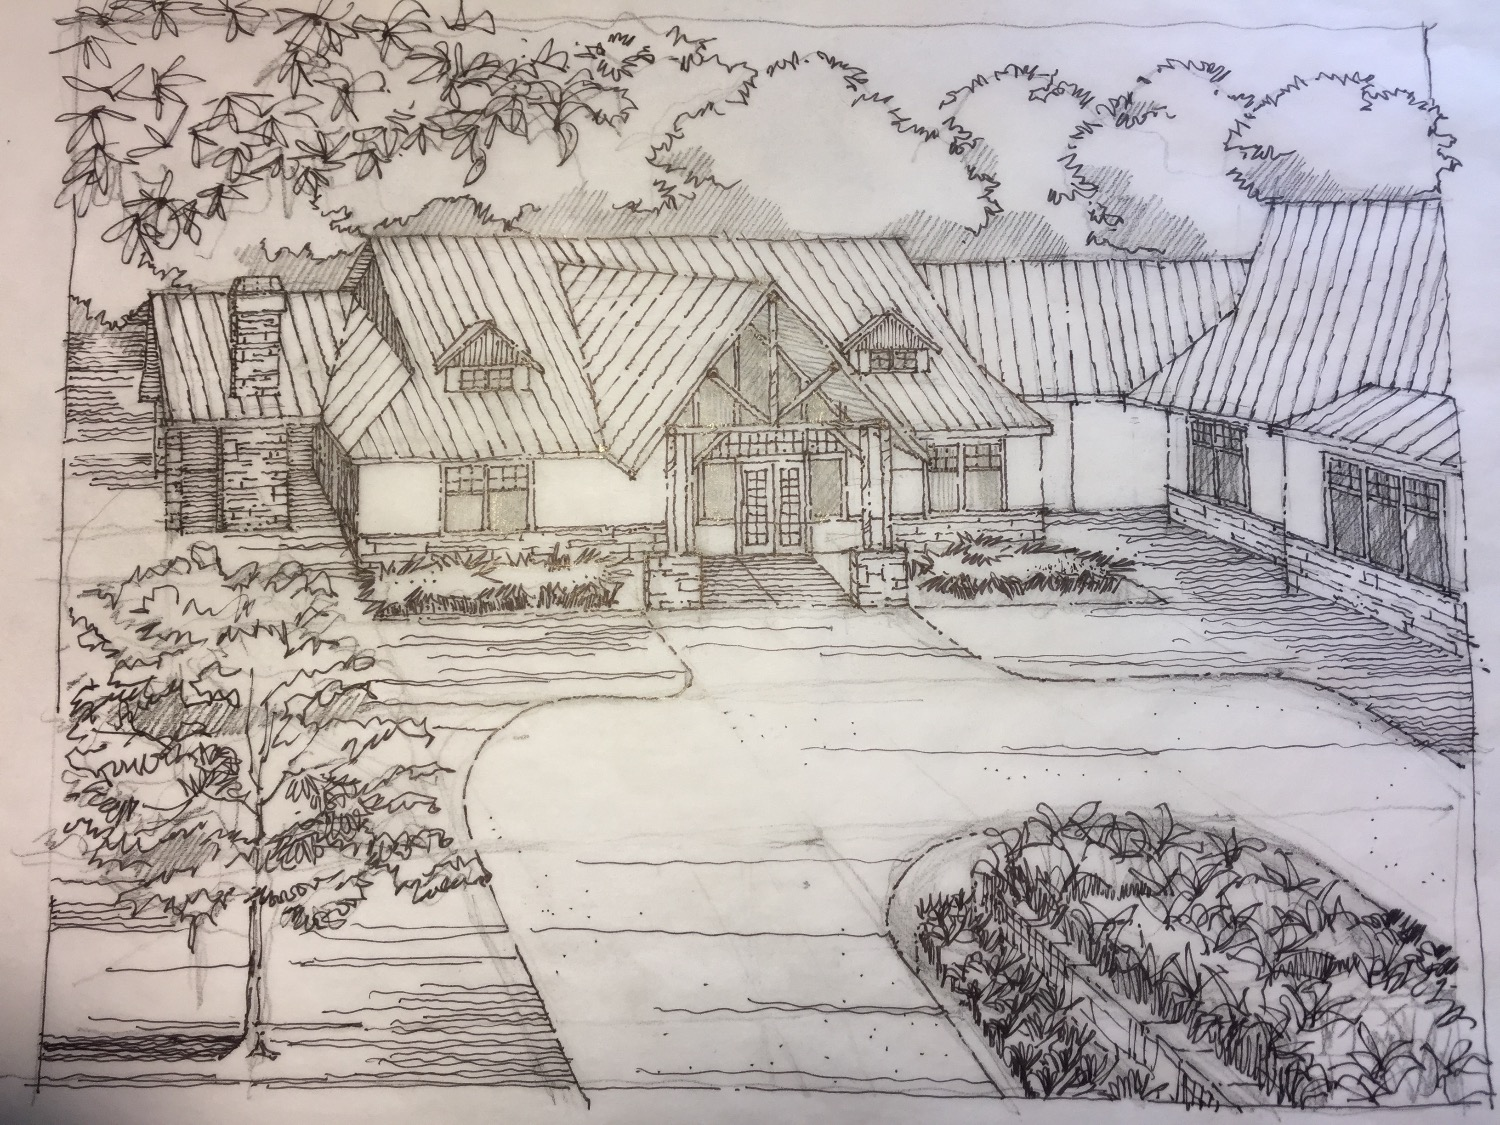 Sundance Ridge Entry Sketch